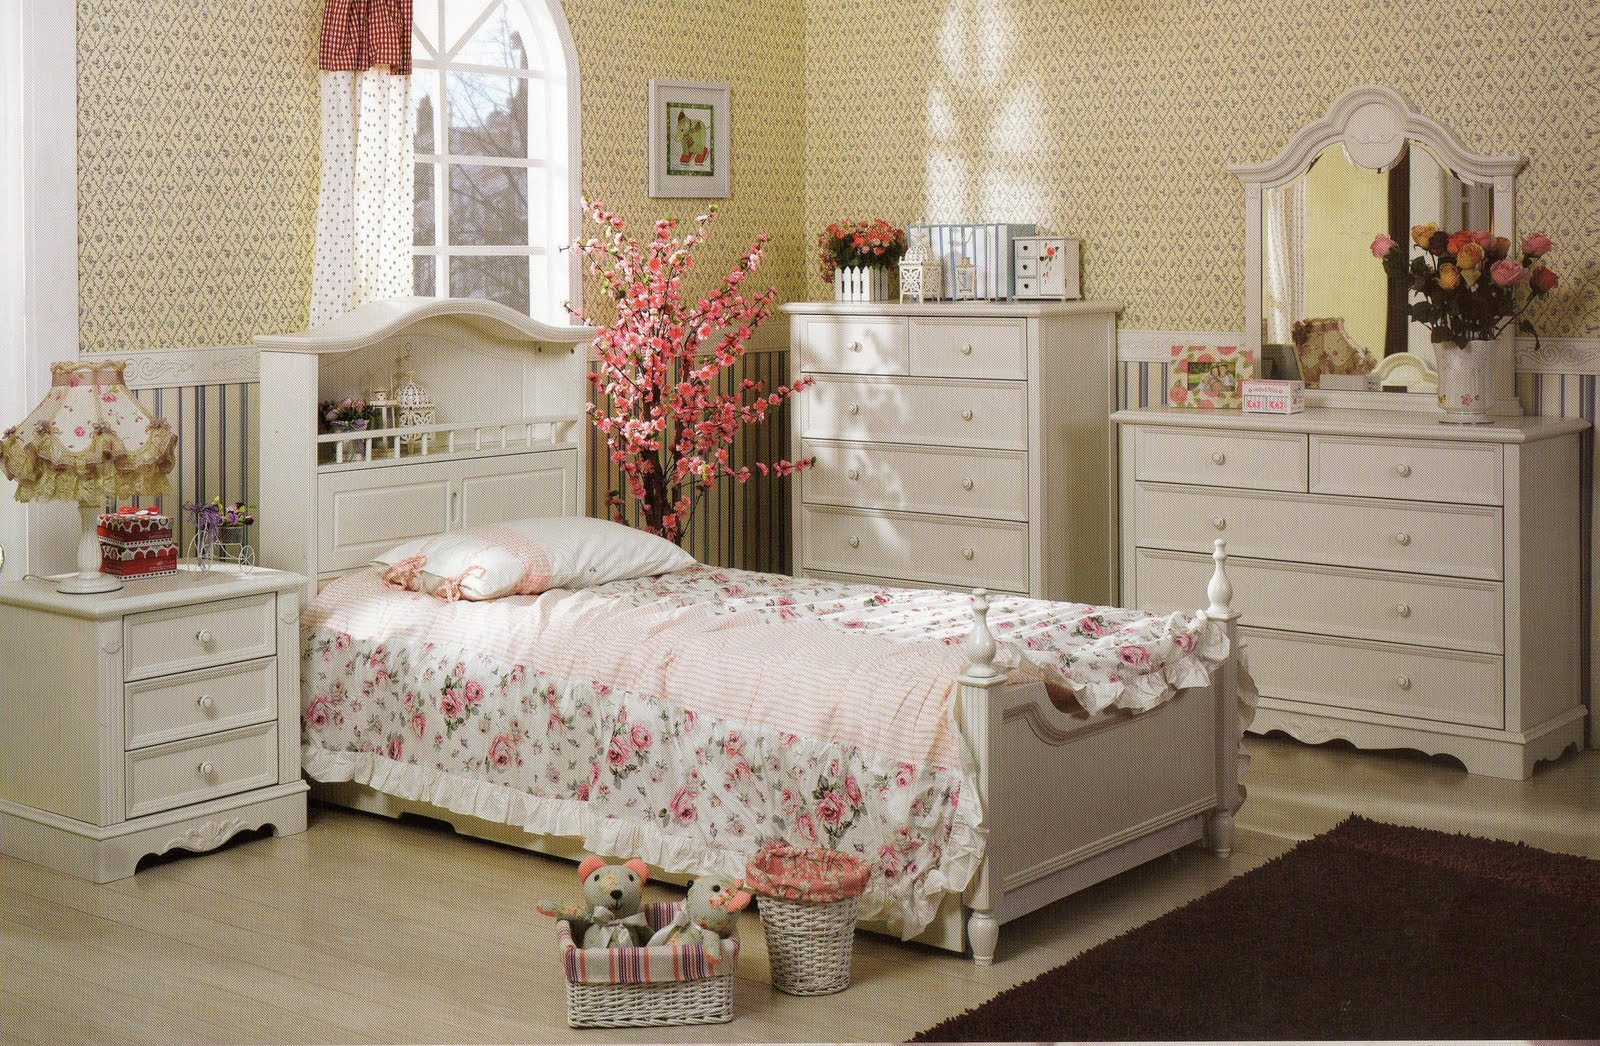 french inspired bedrooms new arrival of our beautiful and elegant french  style bedroom suites  Teens. Country Style Bedroom Suites